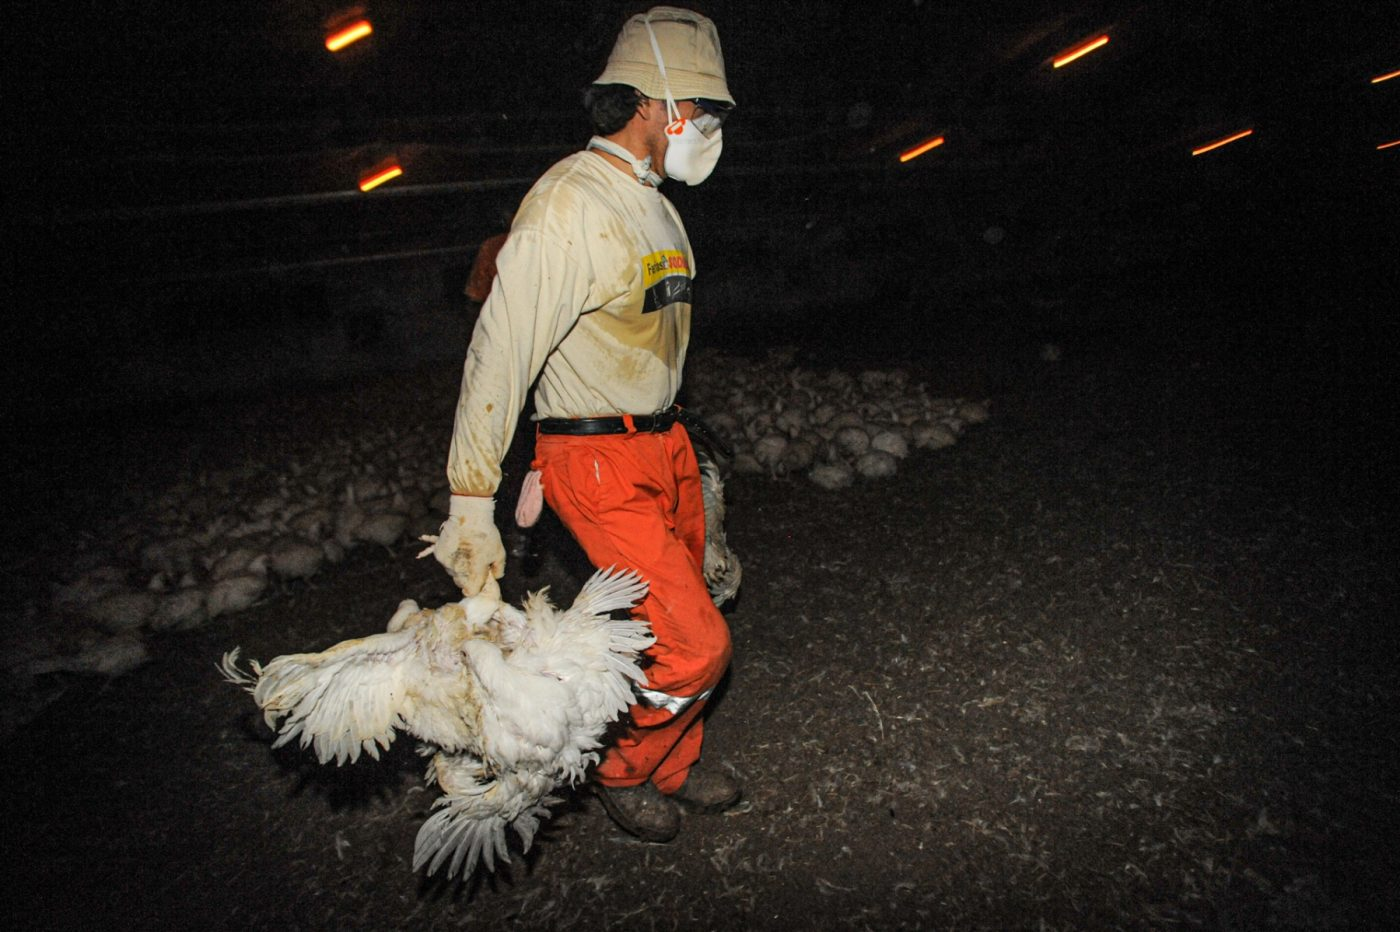 Vertical explainer photo 3 - Broiler chickens being collected for slaughter.